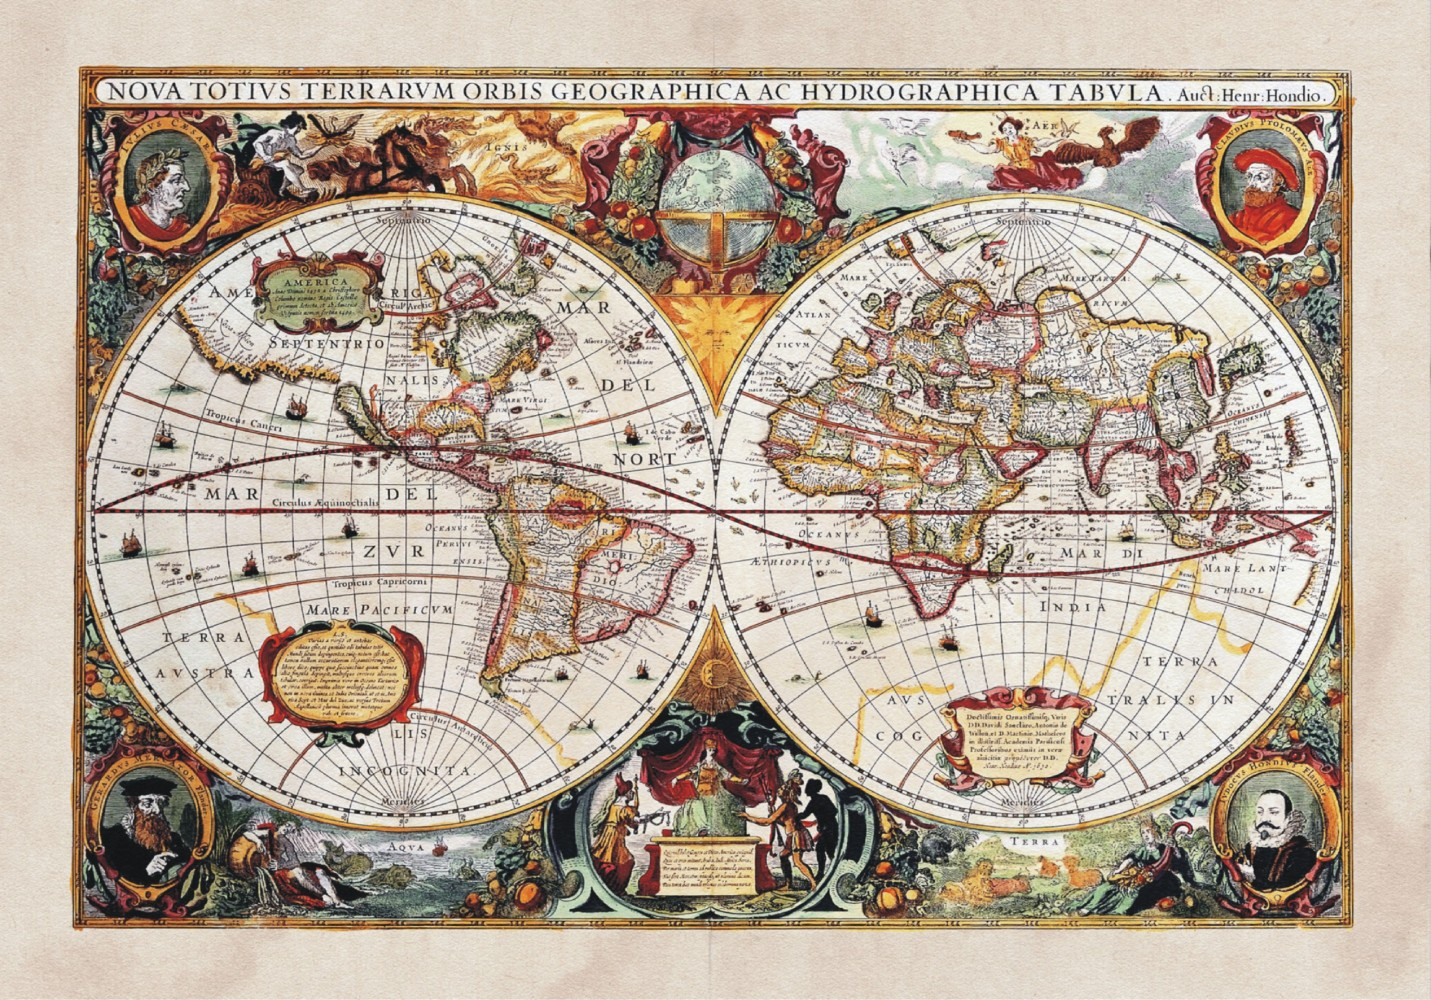 Xxl poster wall mural wallpaper history world map geography photo xxl poster wall mural wallpaper history world map geography photo 160 cm x 115 cm 175 yd x 126 yd gumiabroncs Choice Image